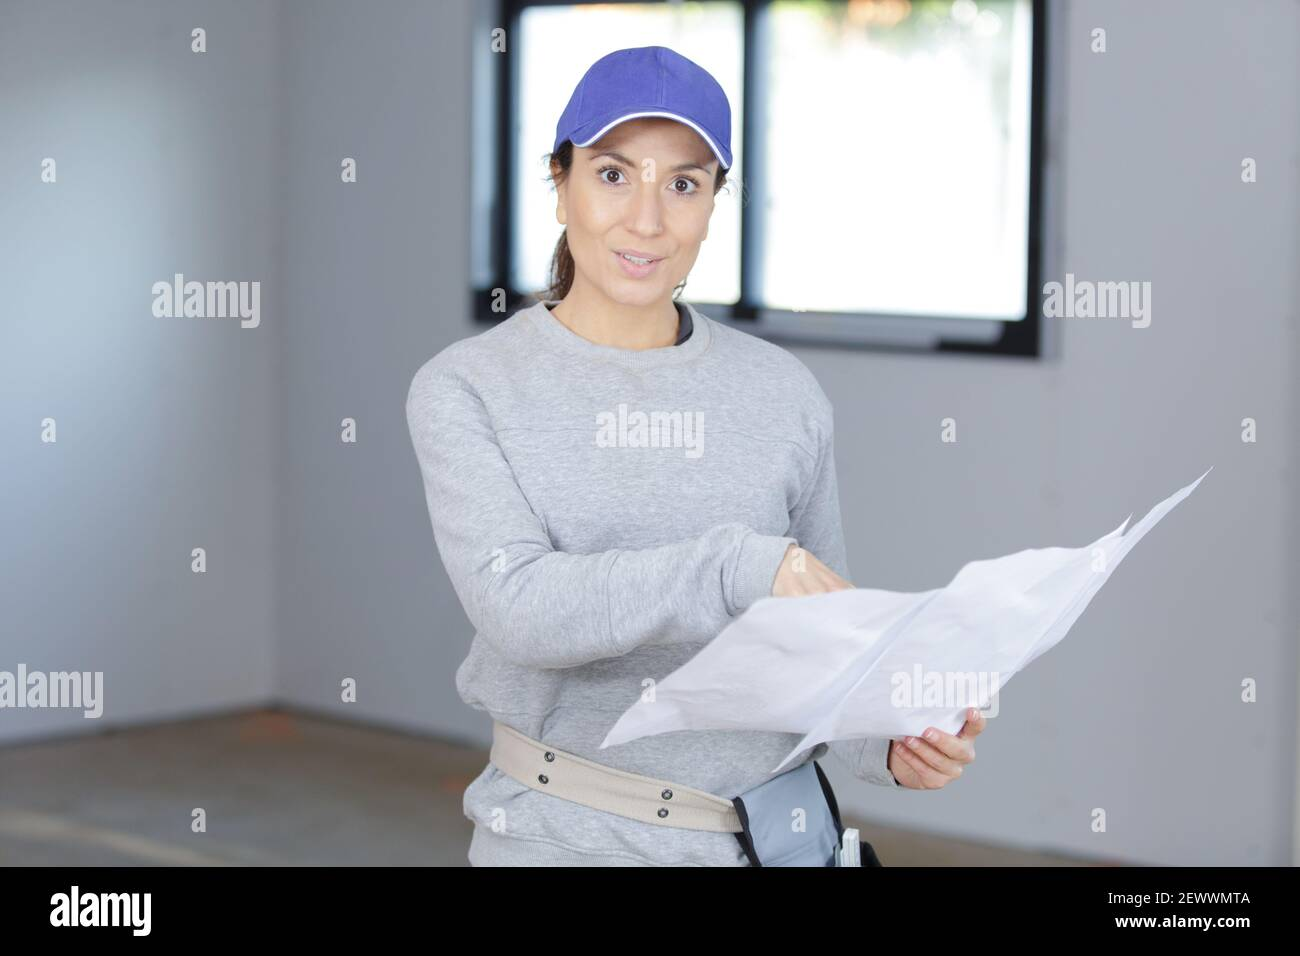 a female enginer checking plans Stock Photo